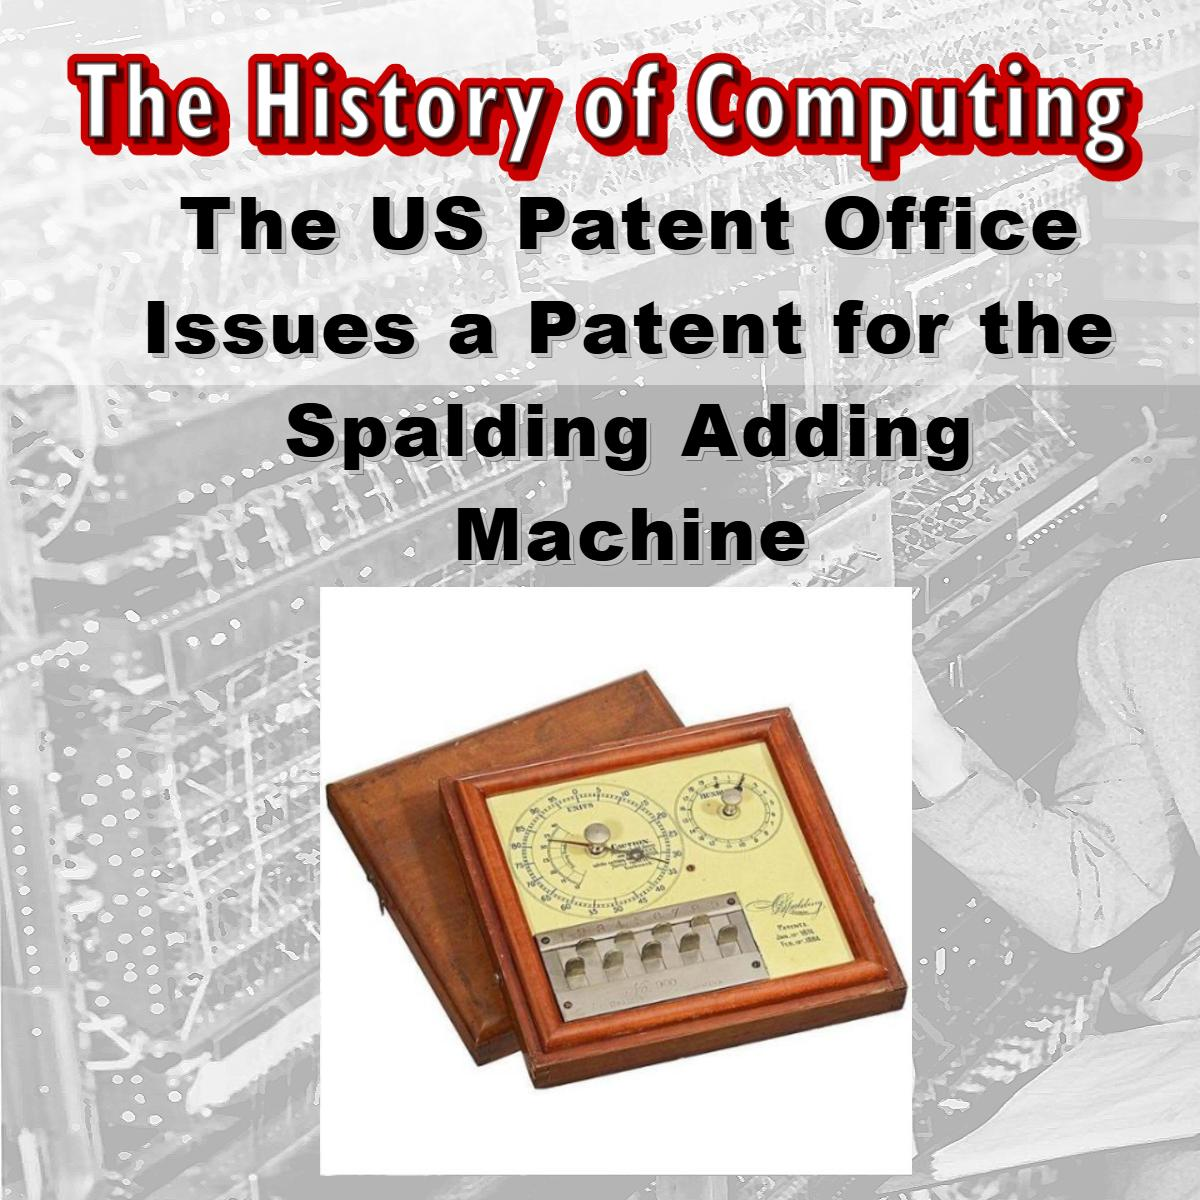 The US Patent Office Issues a Patent for the Spalding Adding Machine